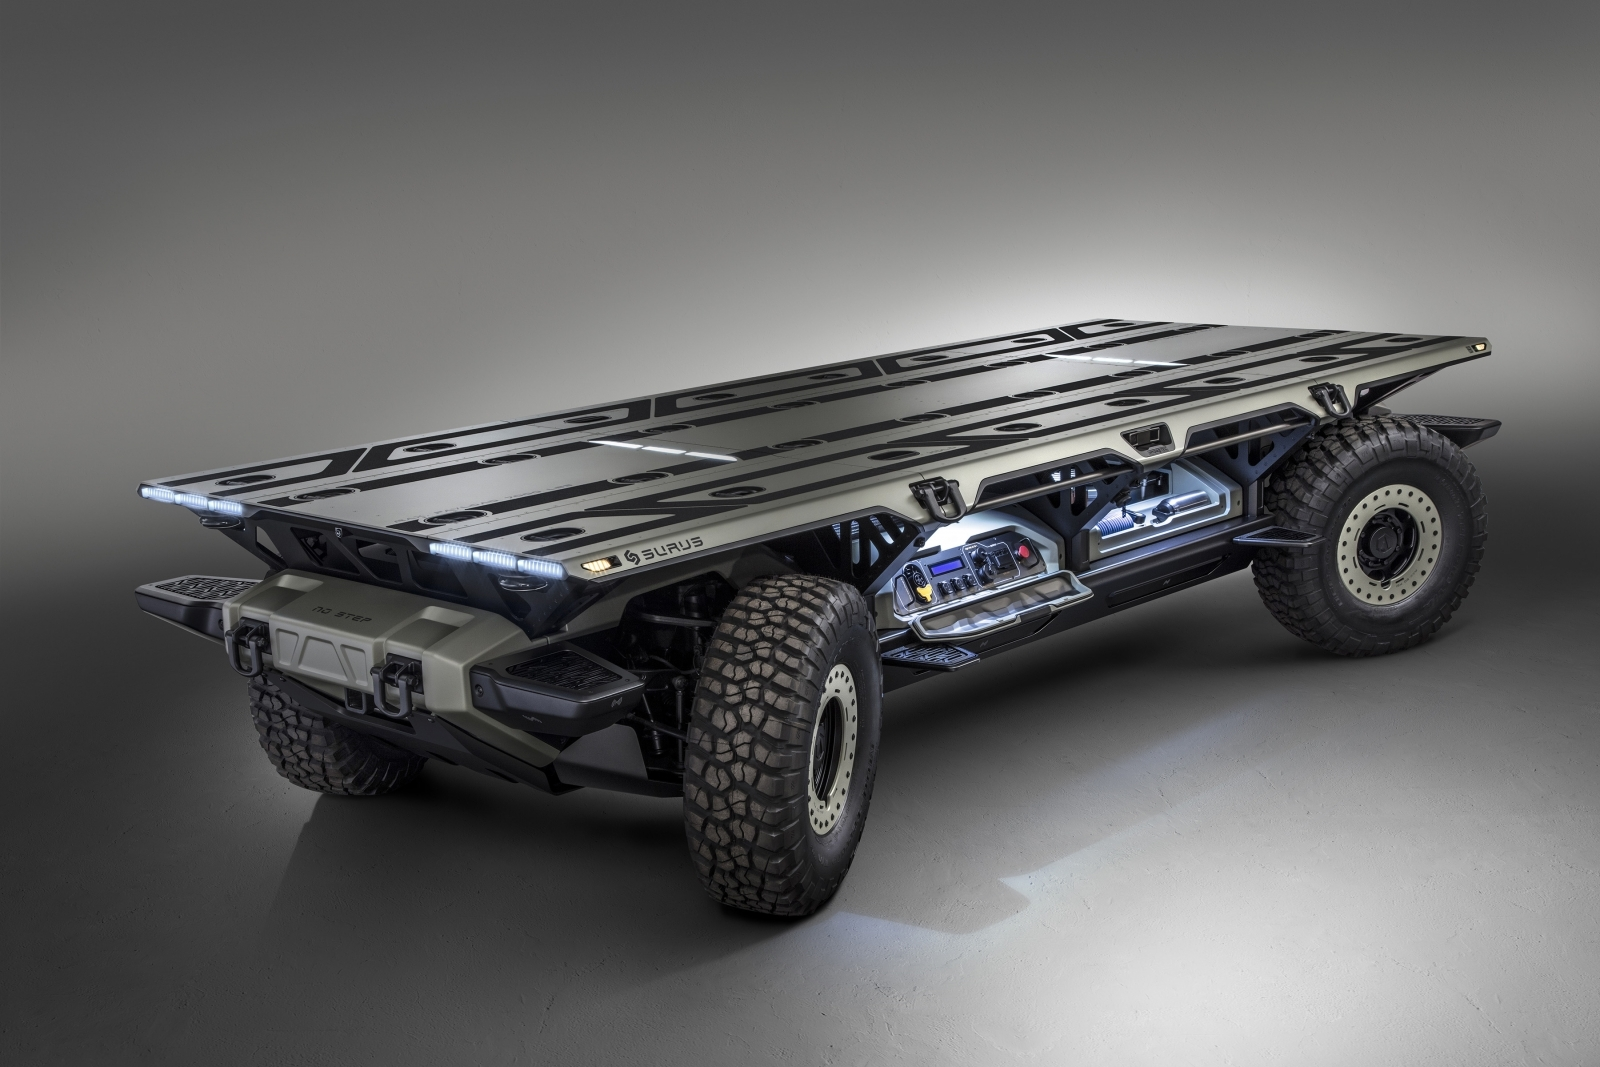 GM Outlines Possibilities for Flexible, Autonomous Fuel Cell Electric Platform